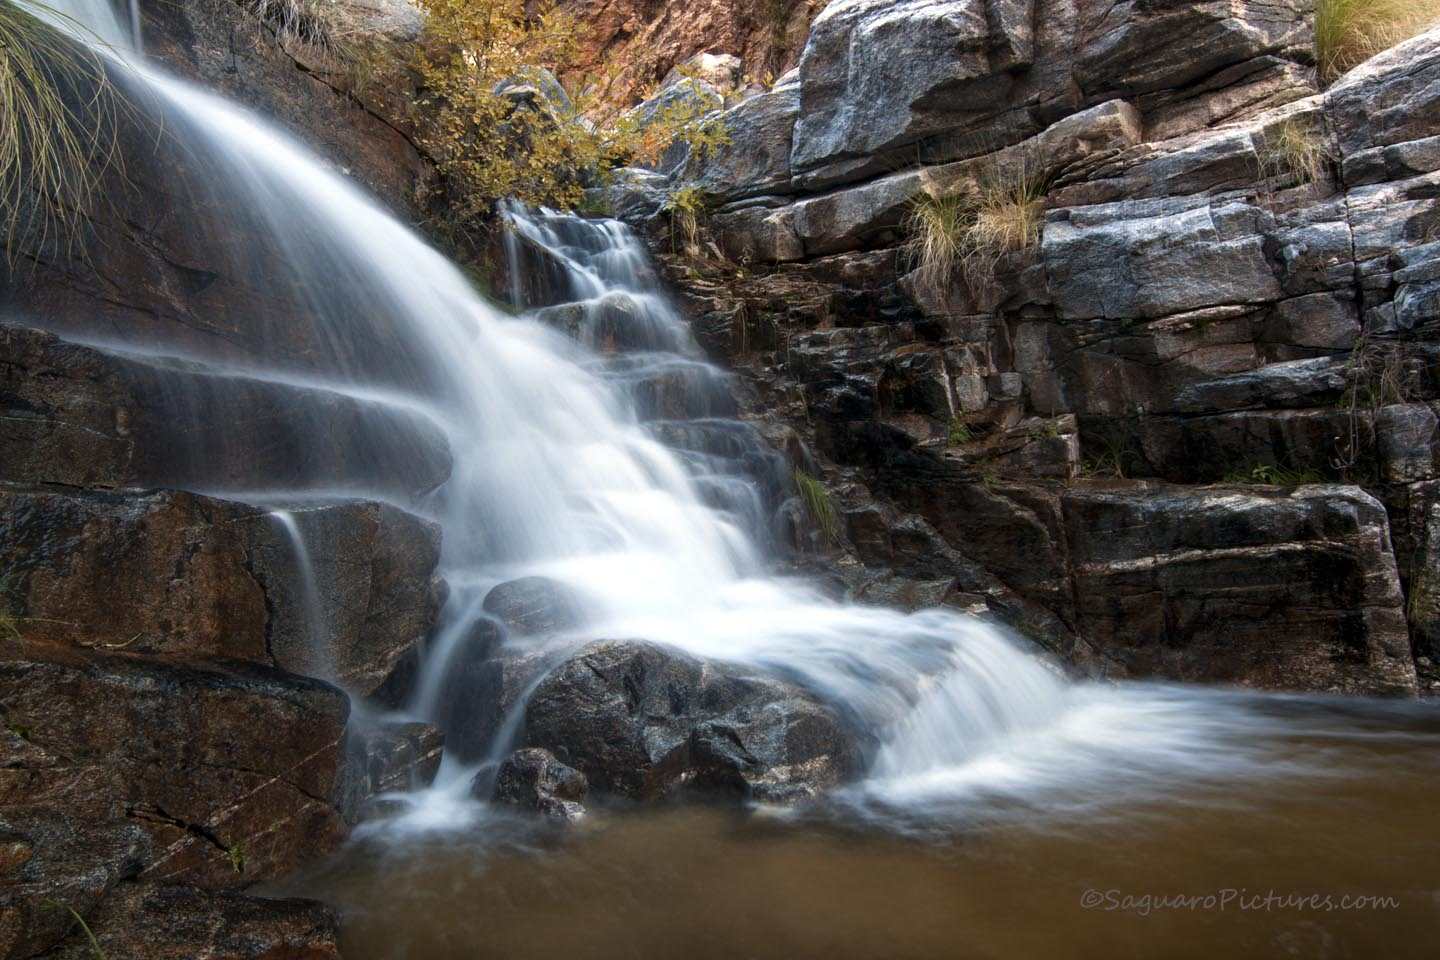 image of 7 falls in sabino canyon